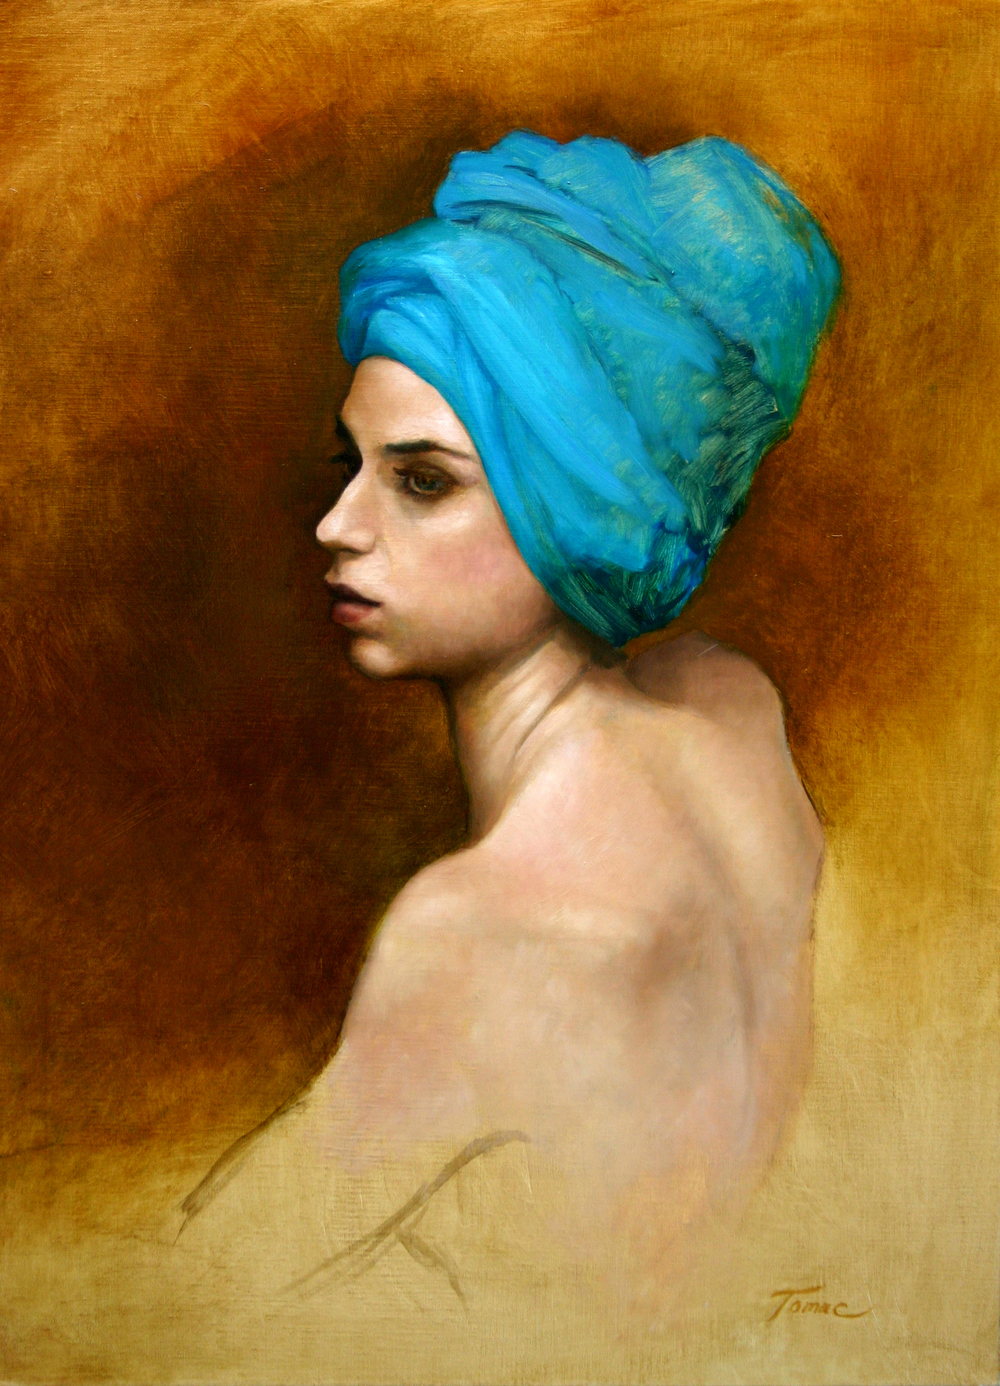 The Tourquoise Turban